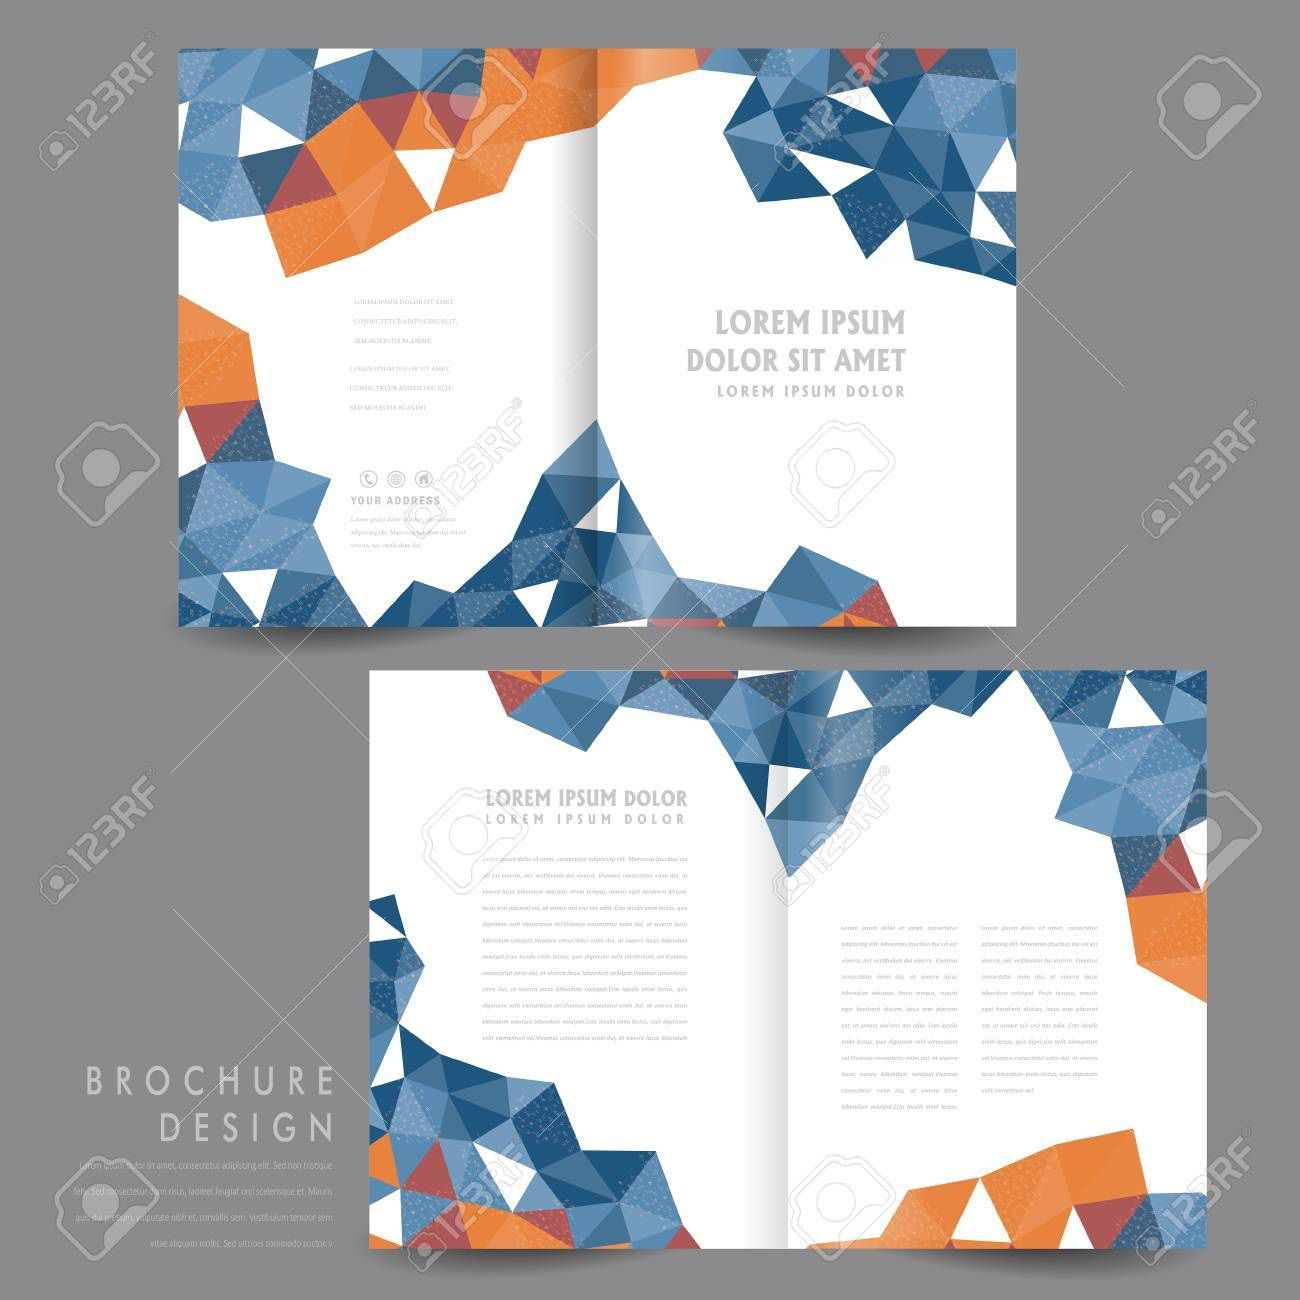 003 Astounding Half Fold Brochure Template Picture  Free Microsoft Word IndesignFull